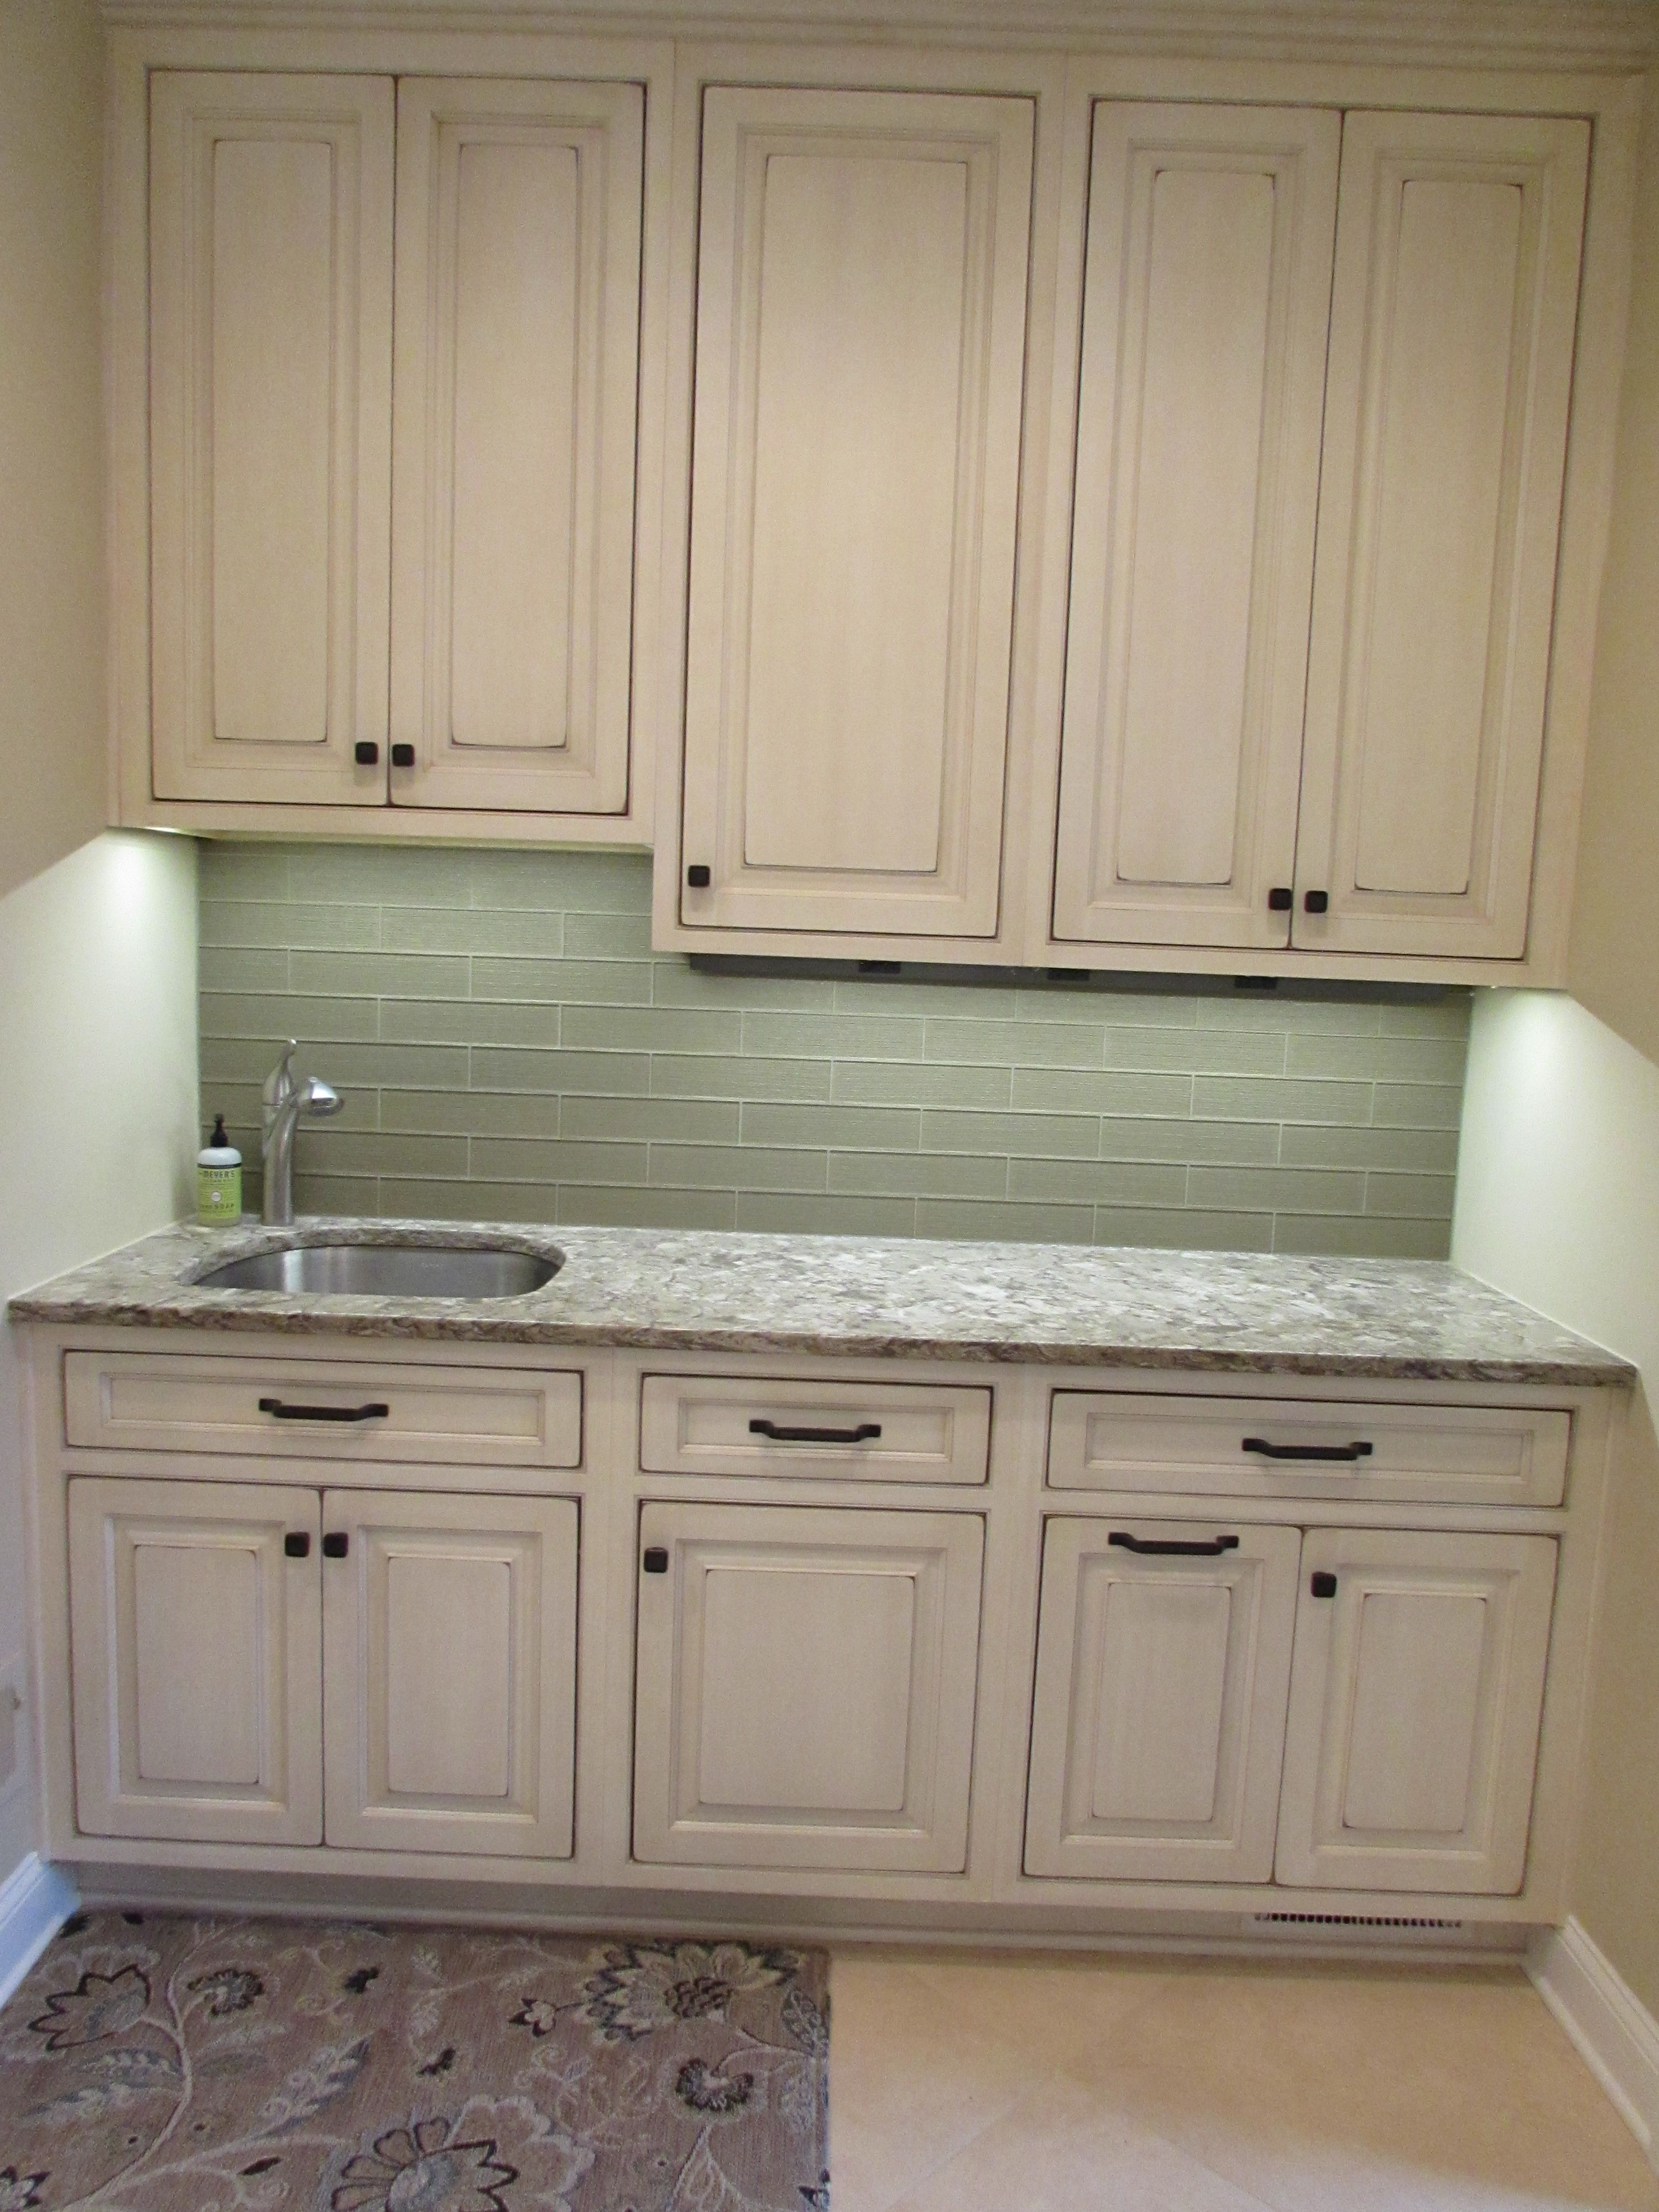 Laundry Room Cabinets N Potomac Md Kitchen Remodel Kitchen Construction Kitchen Concepts Small Space Kitchen